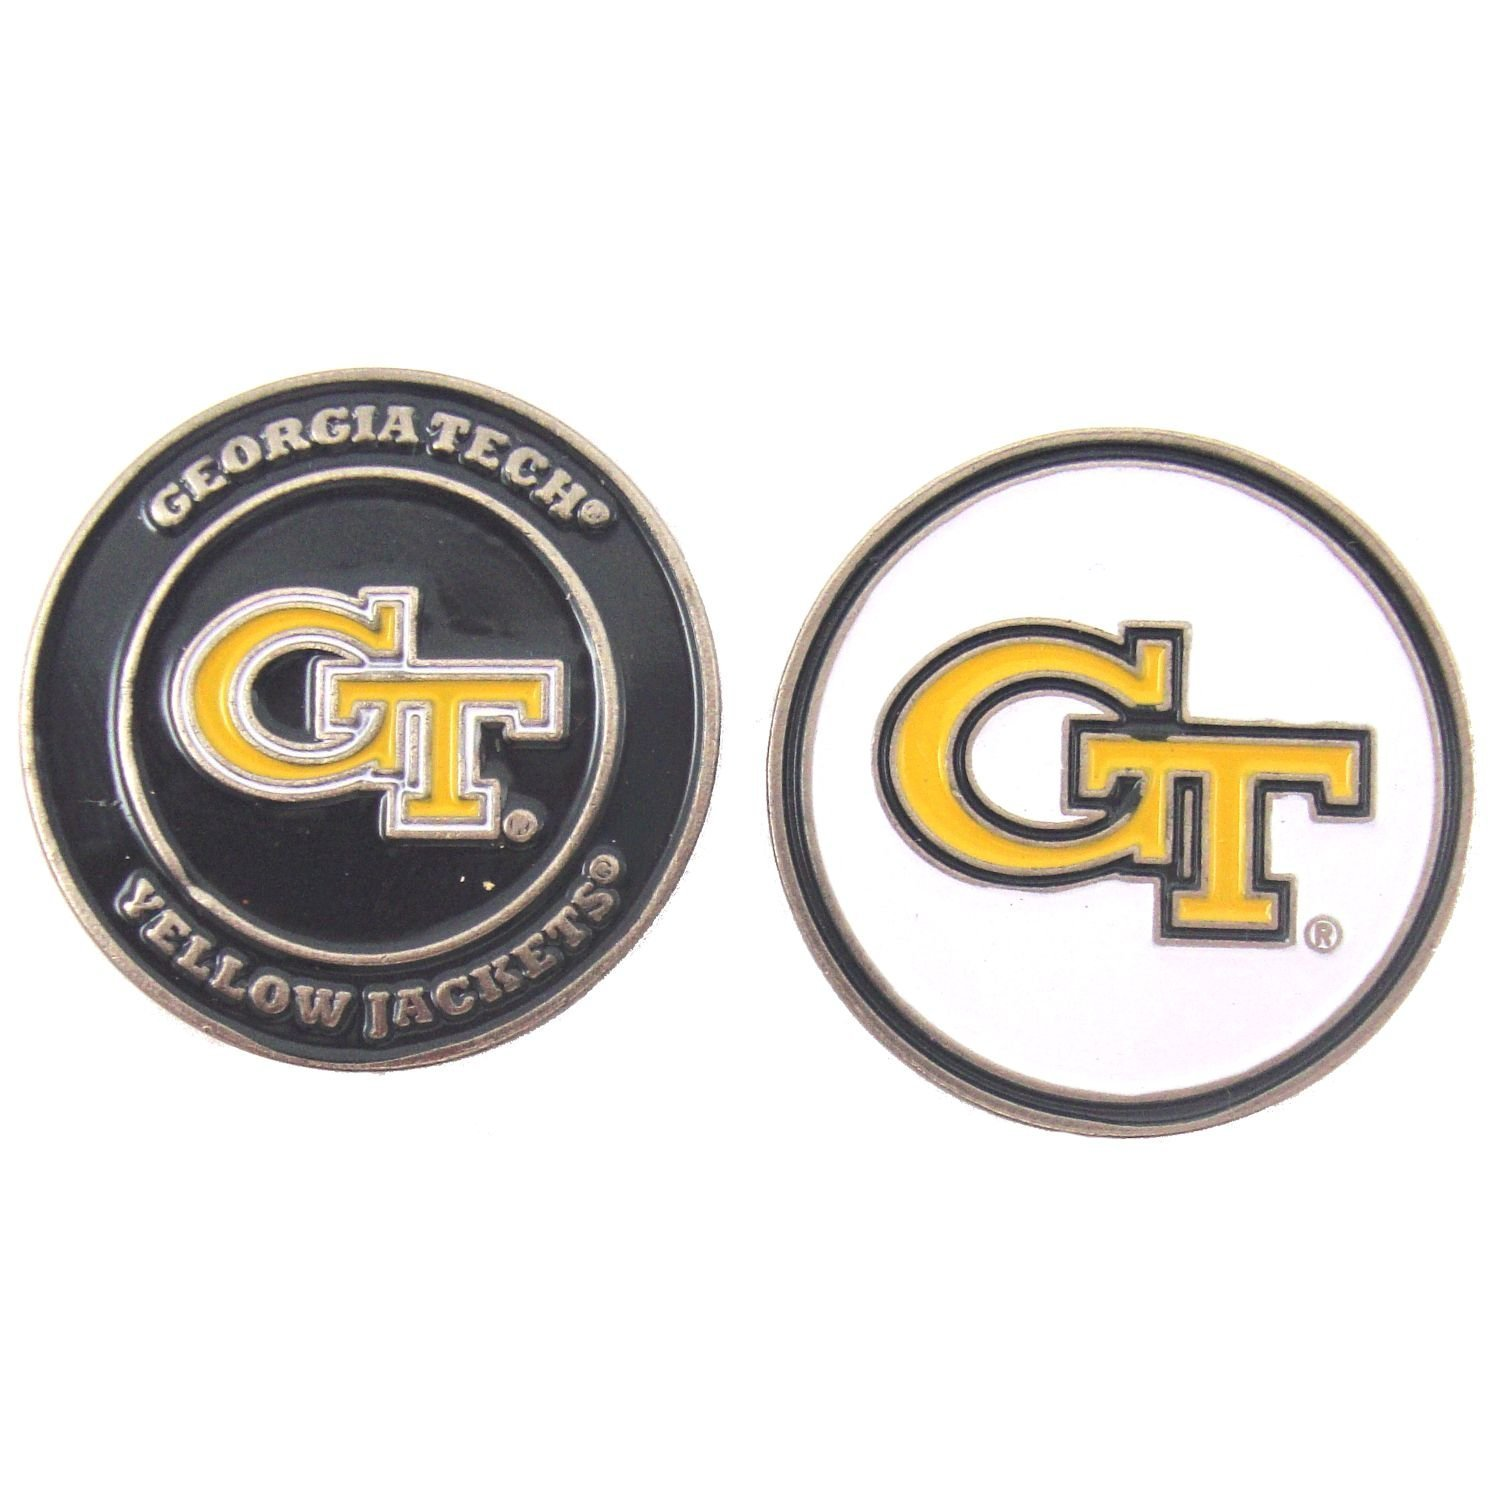 Georgia Tech Yellow Jackets Double-Sided Golf Ball Marker, 1 Team Logo Double Sided Ball Marker By Waggle Pro Shop,USA